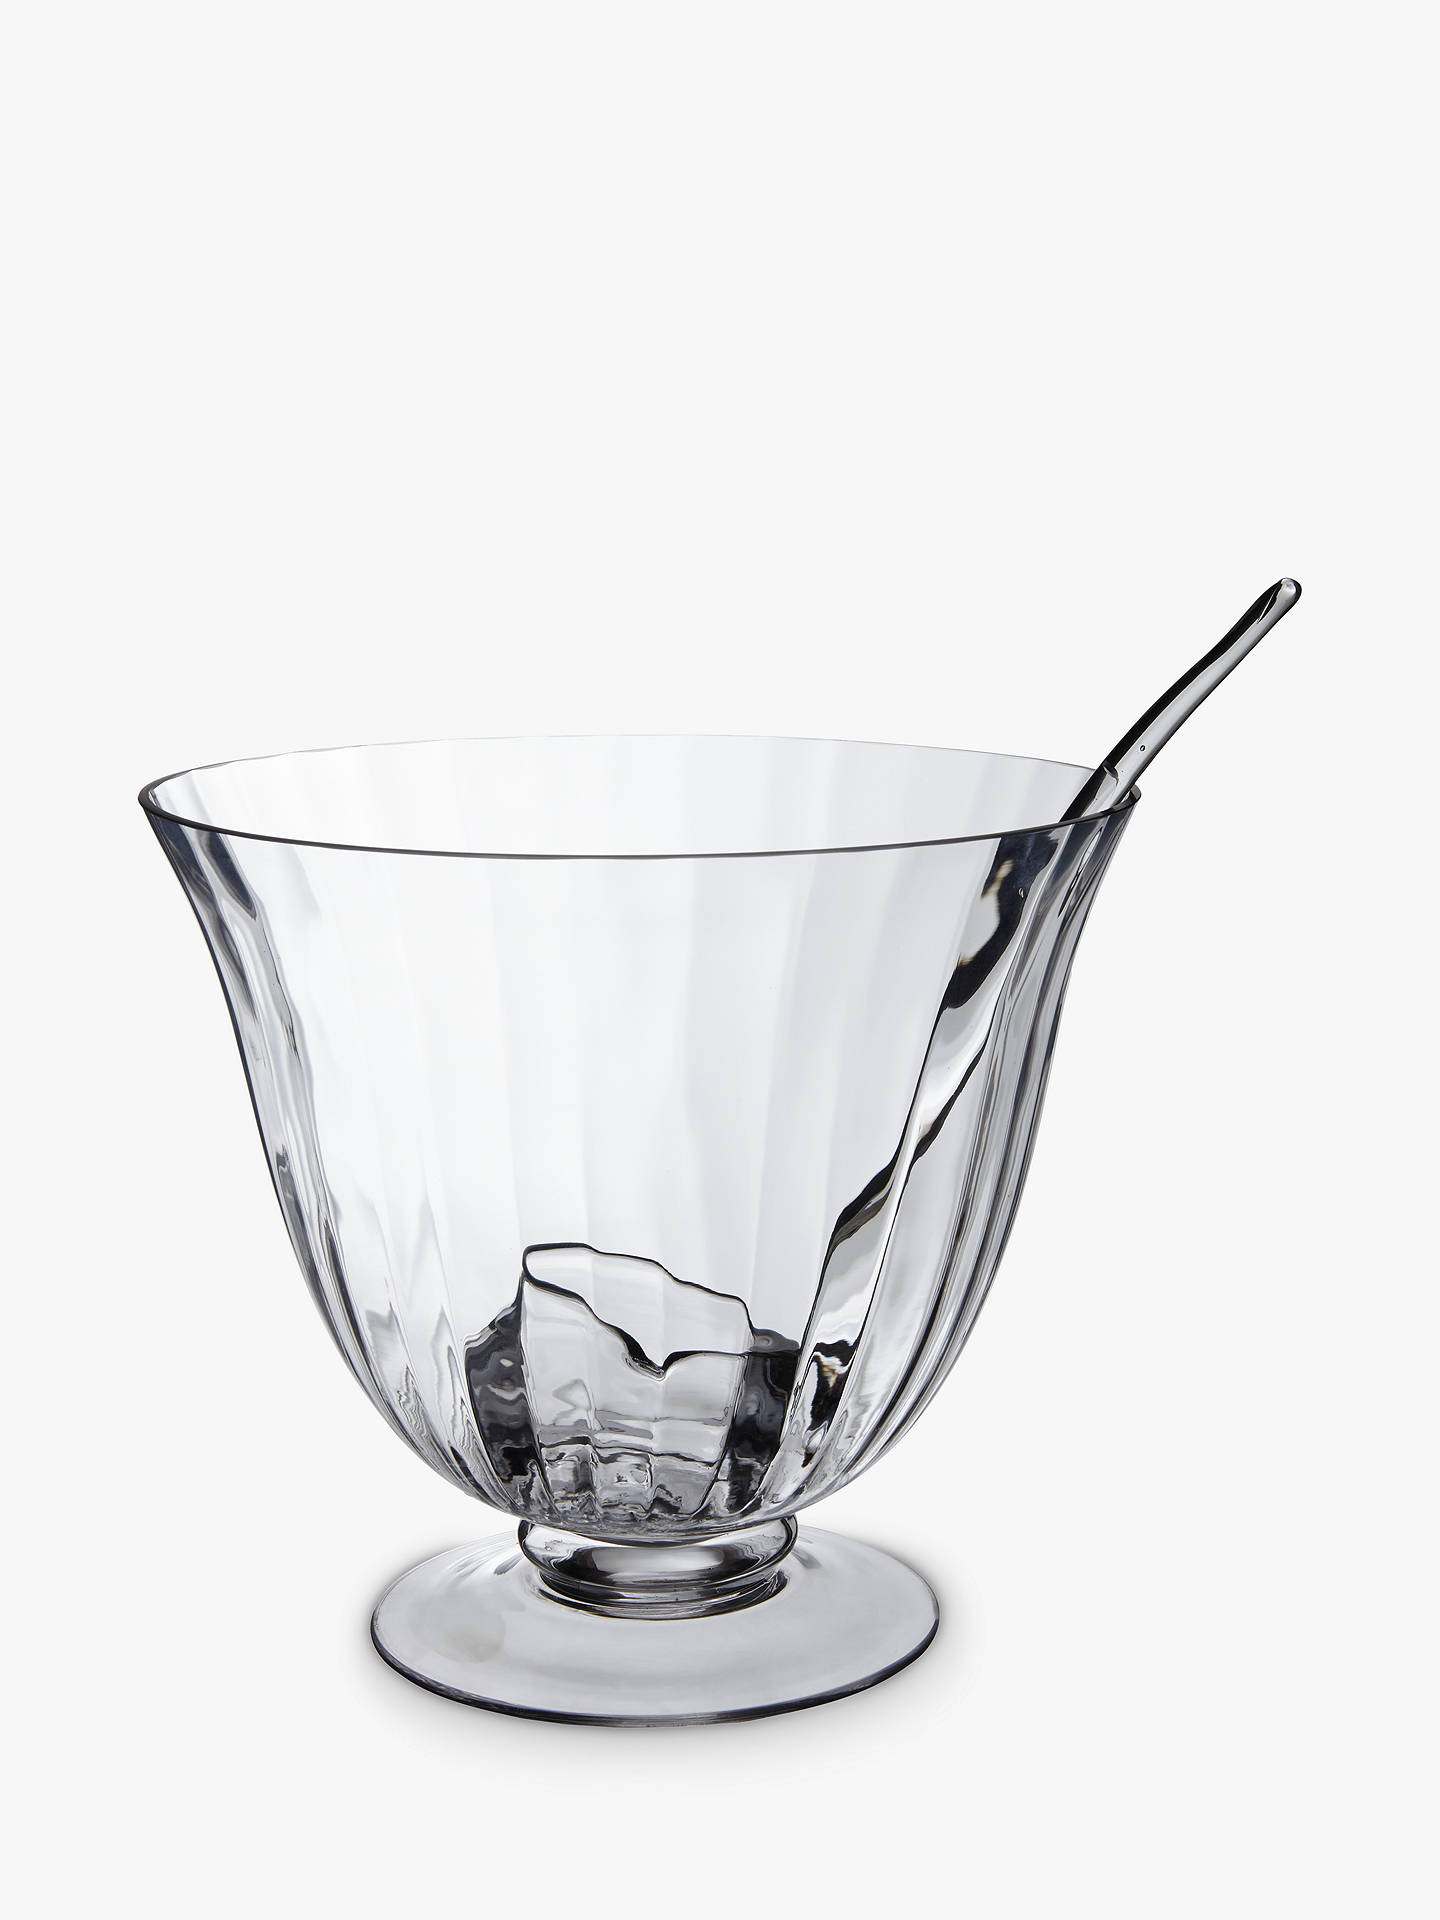 Croft Collection Hambleden Handmade Punch Bowl & Ladle by Croft Collection